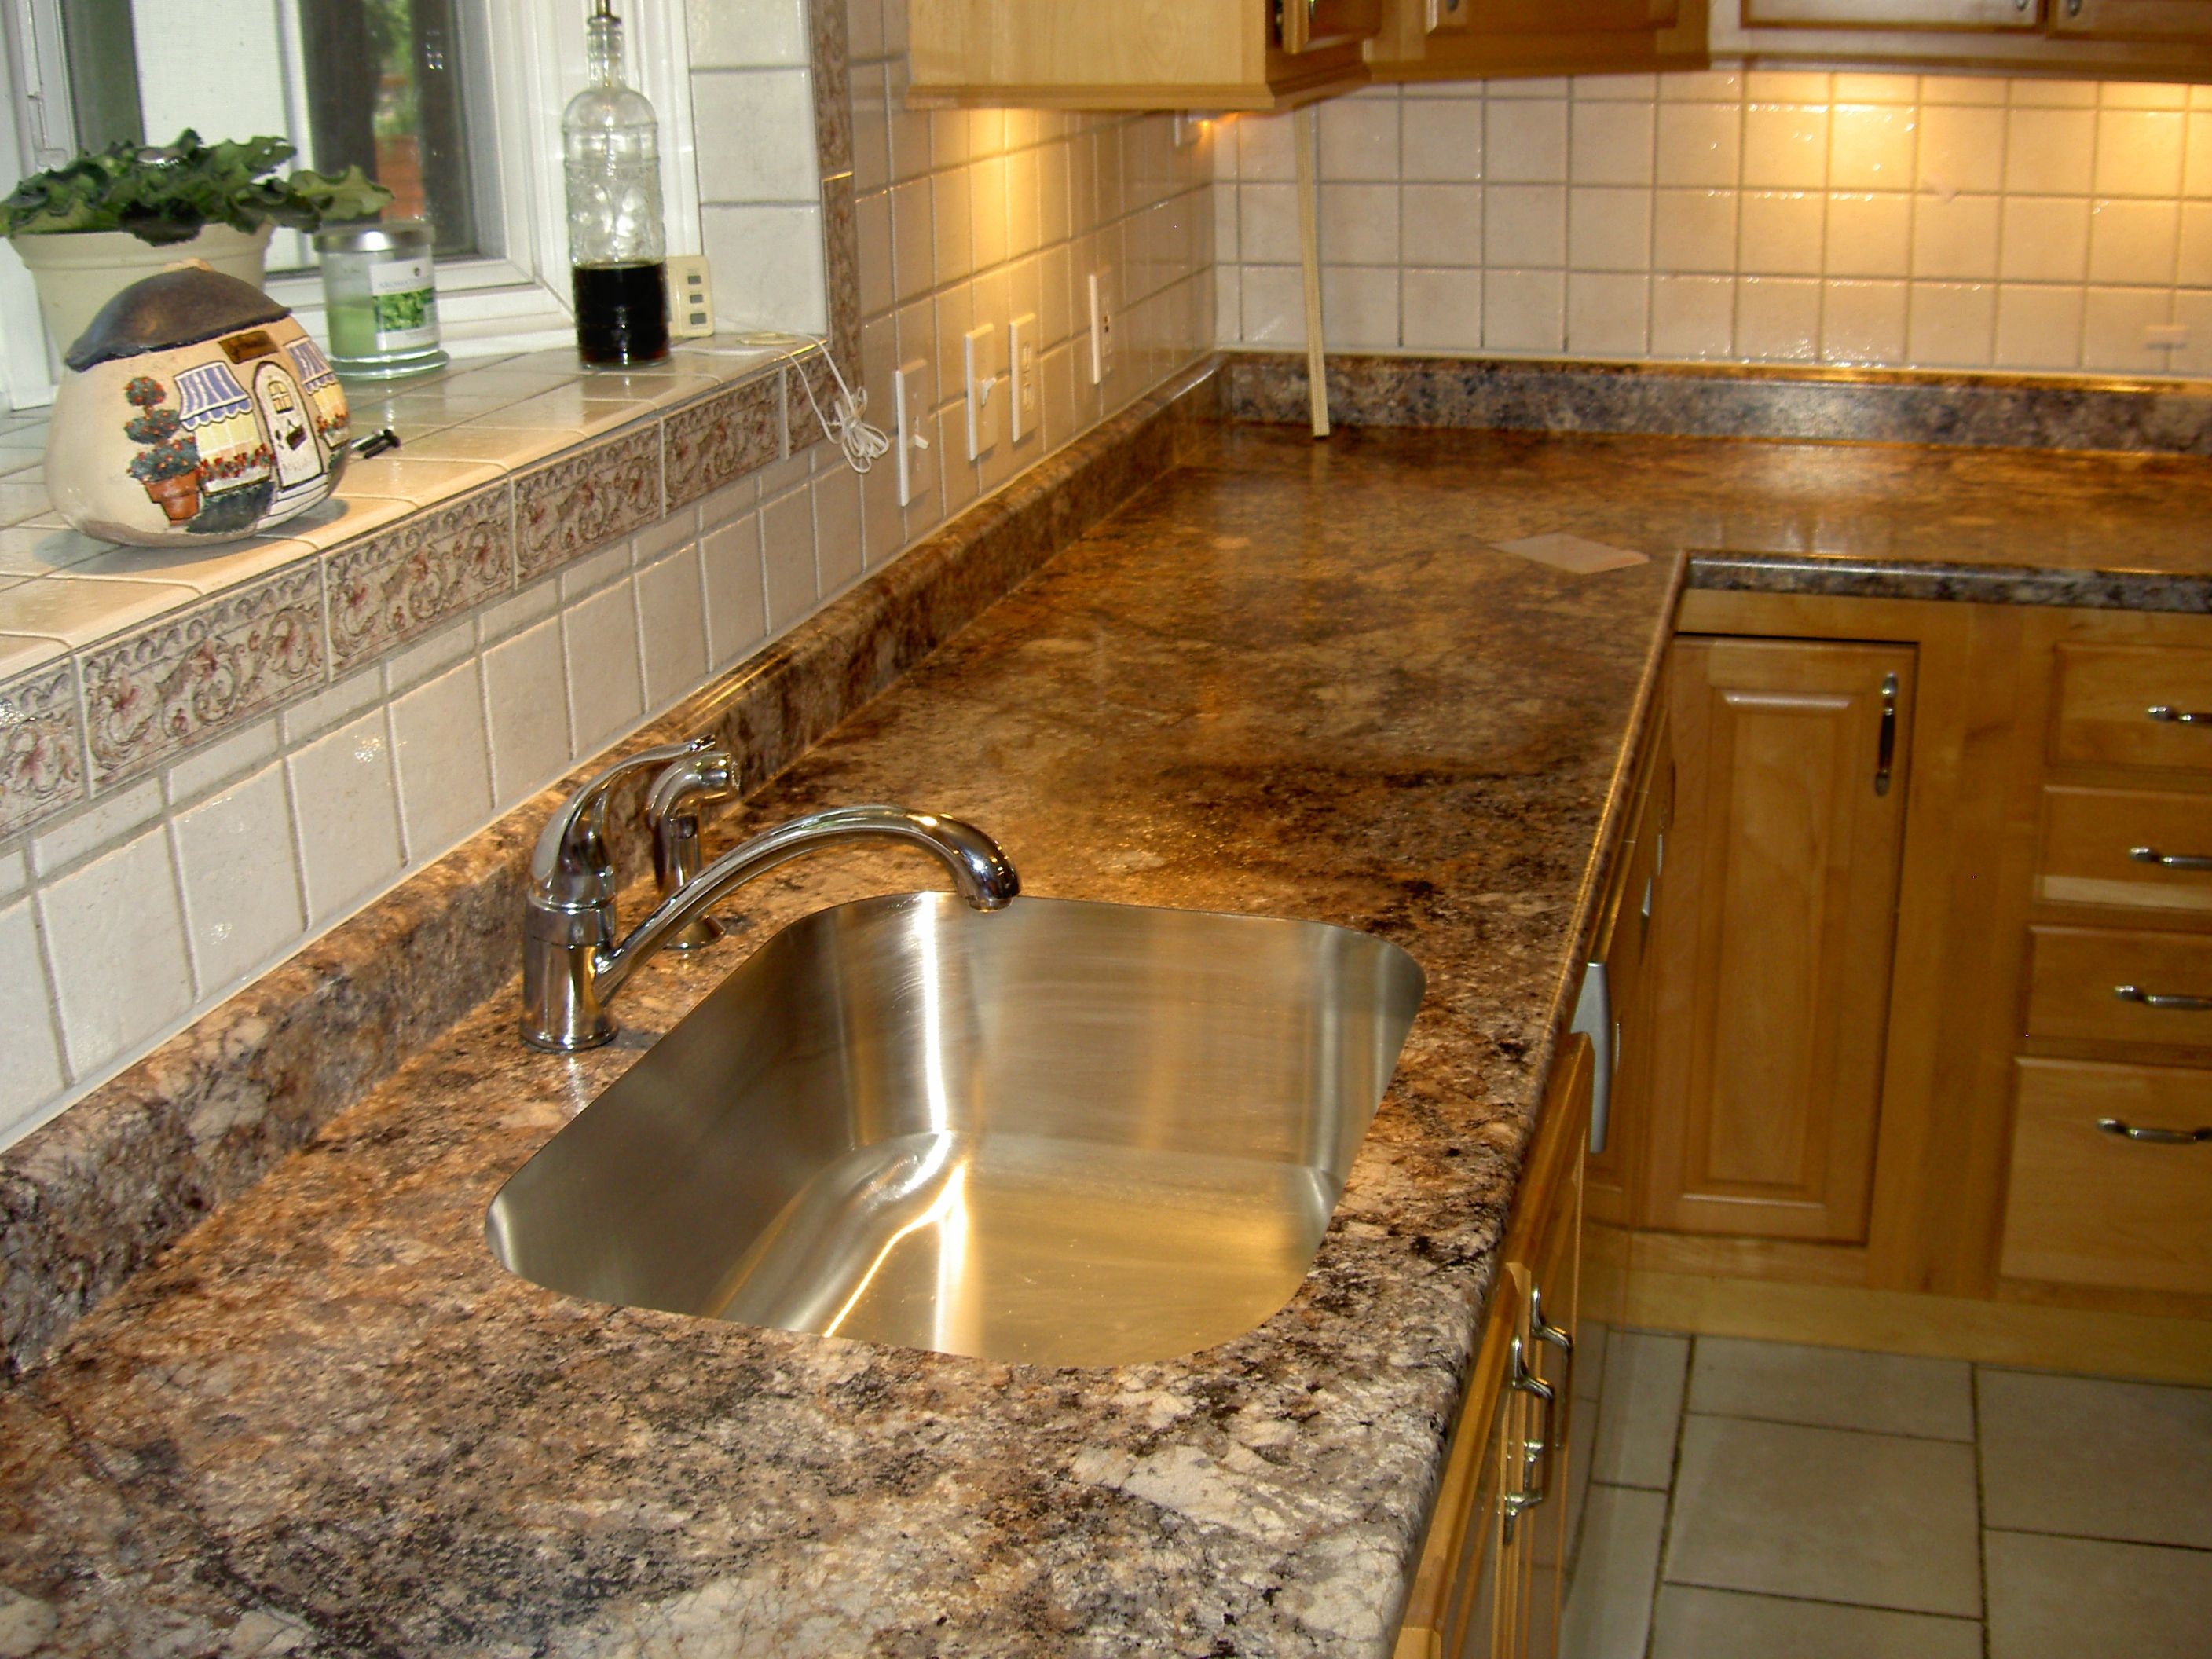 Granite Laminate Countertop Sheets Saving Money With Laminate Countertops Sheets They Look Awesome